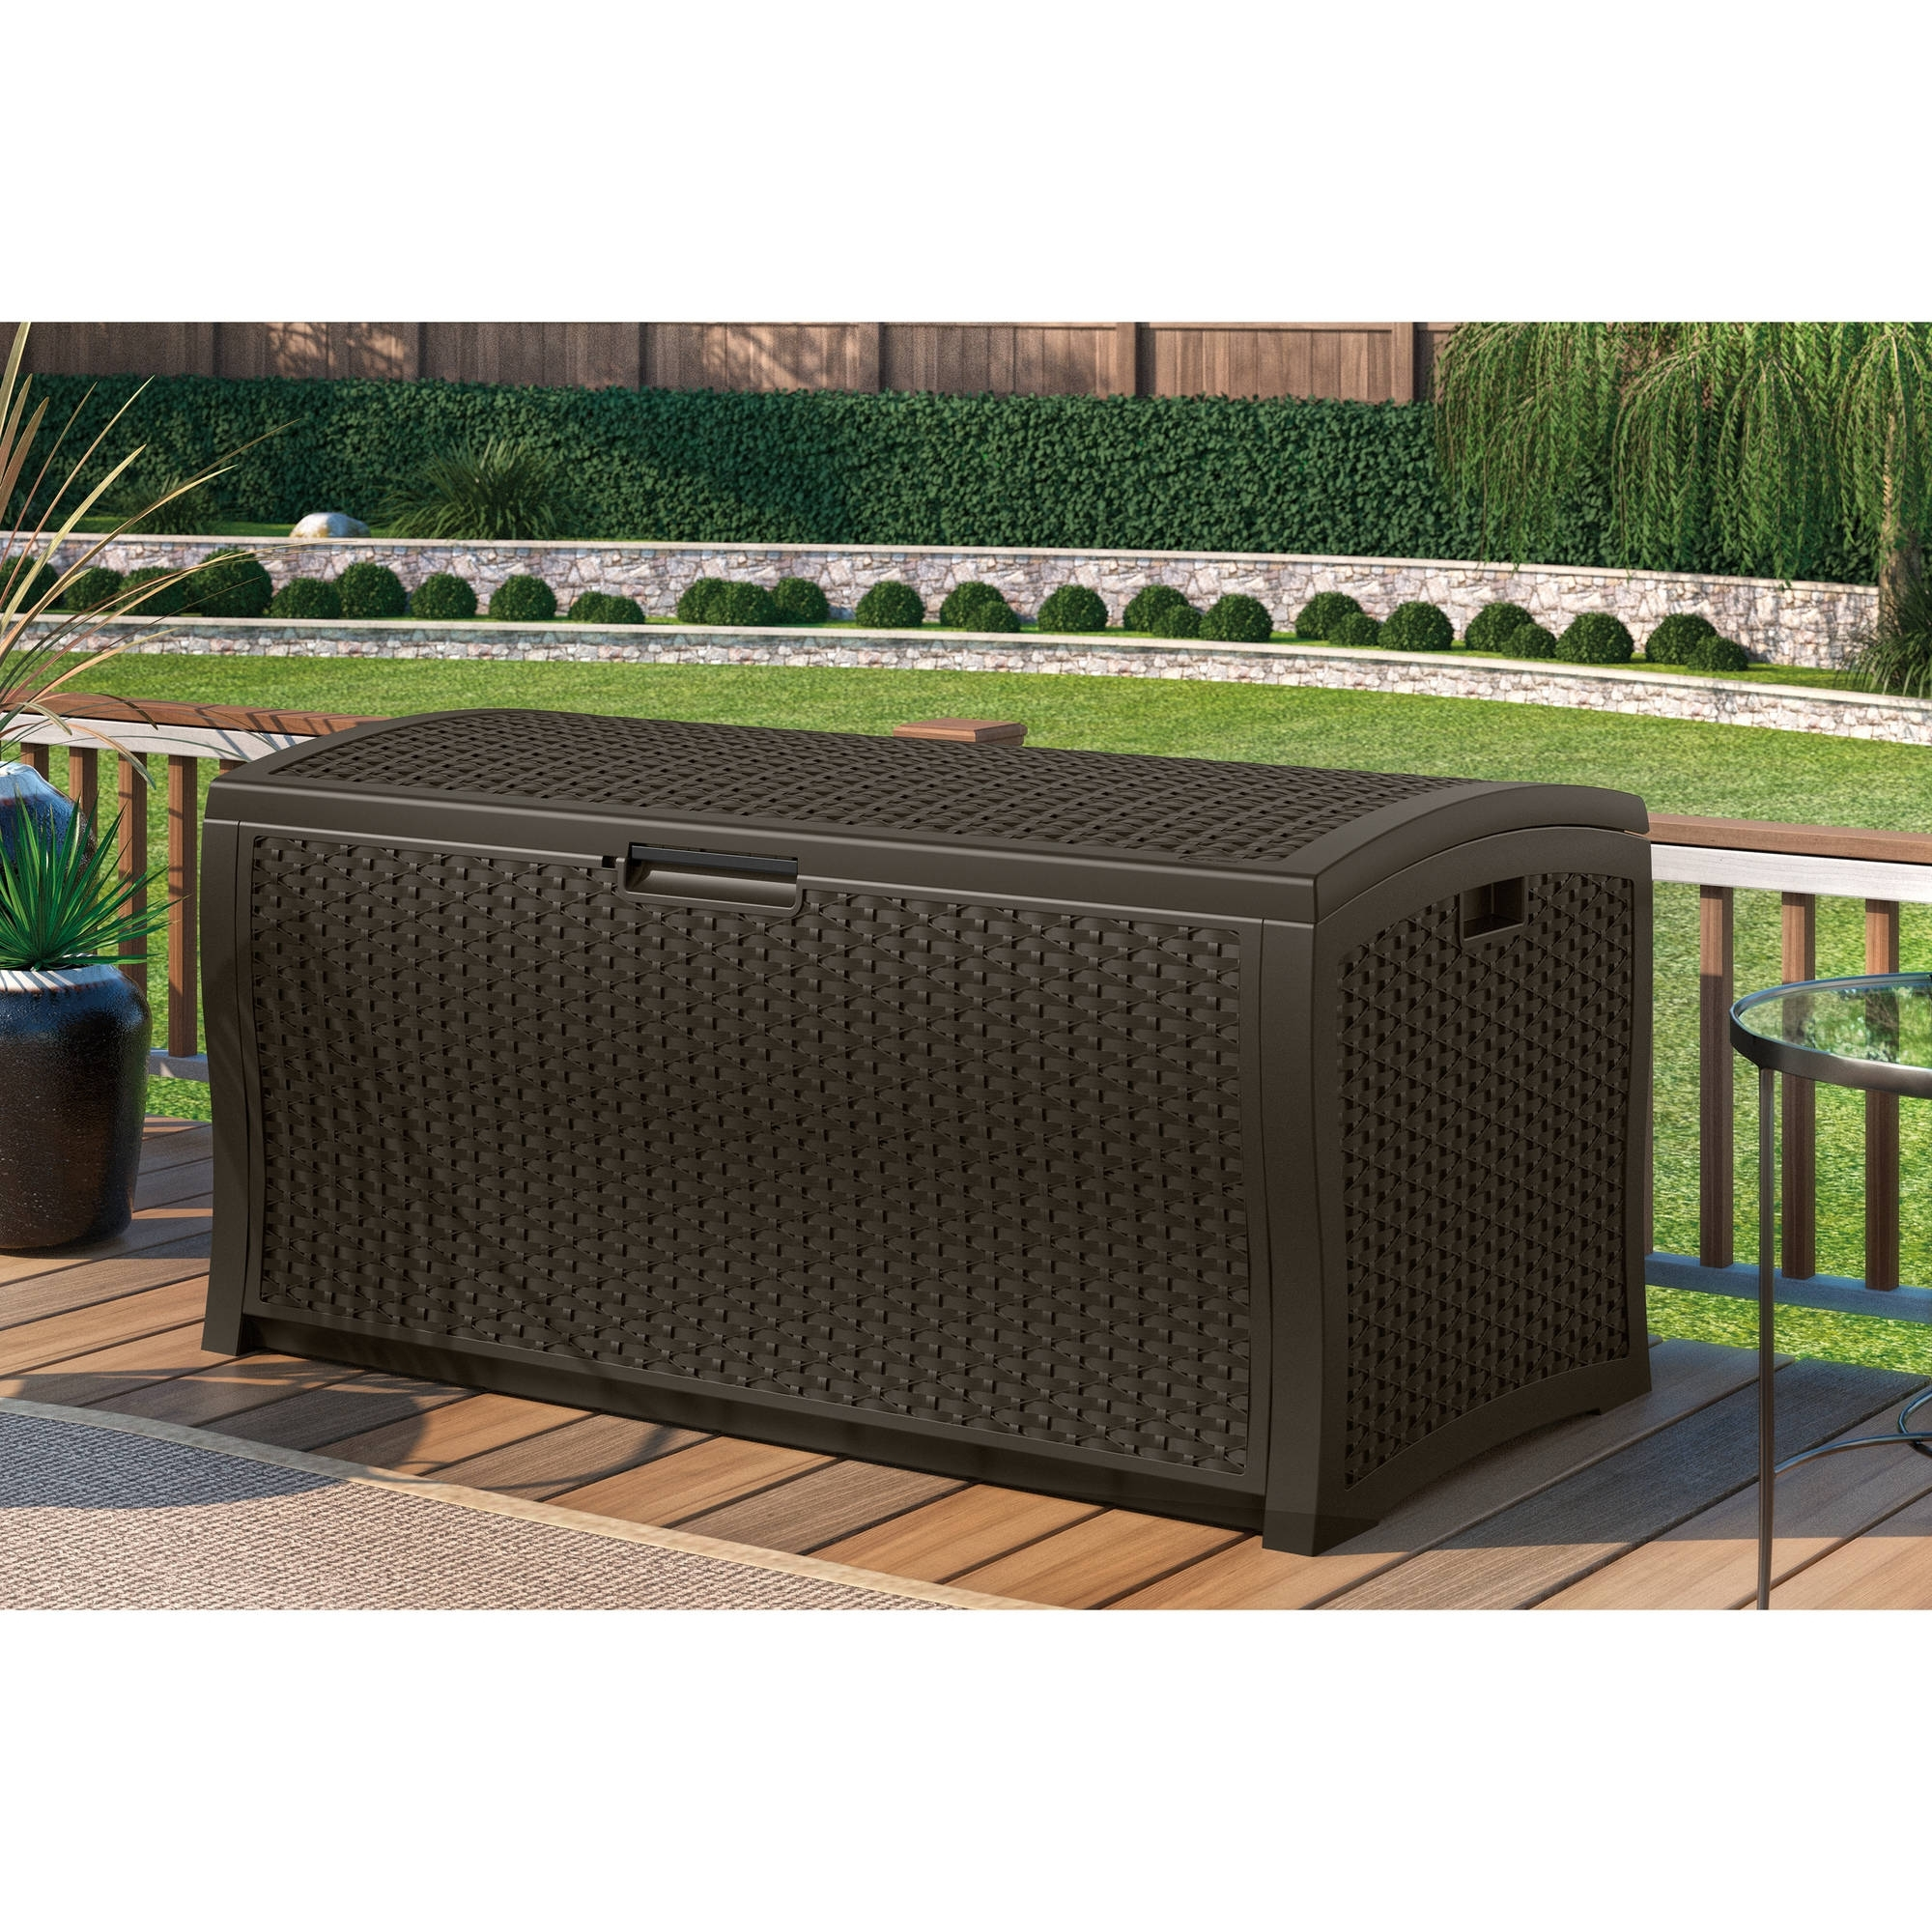 Image of: Suncast 103 Gallon Light Taupe Resin Deck Box Db10300 Walmart Throughout Storage For Outdoor Cushions Store Storage For Outdoor Cushions